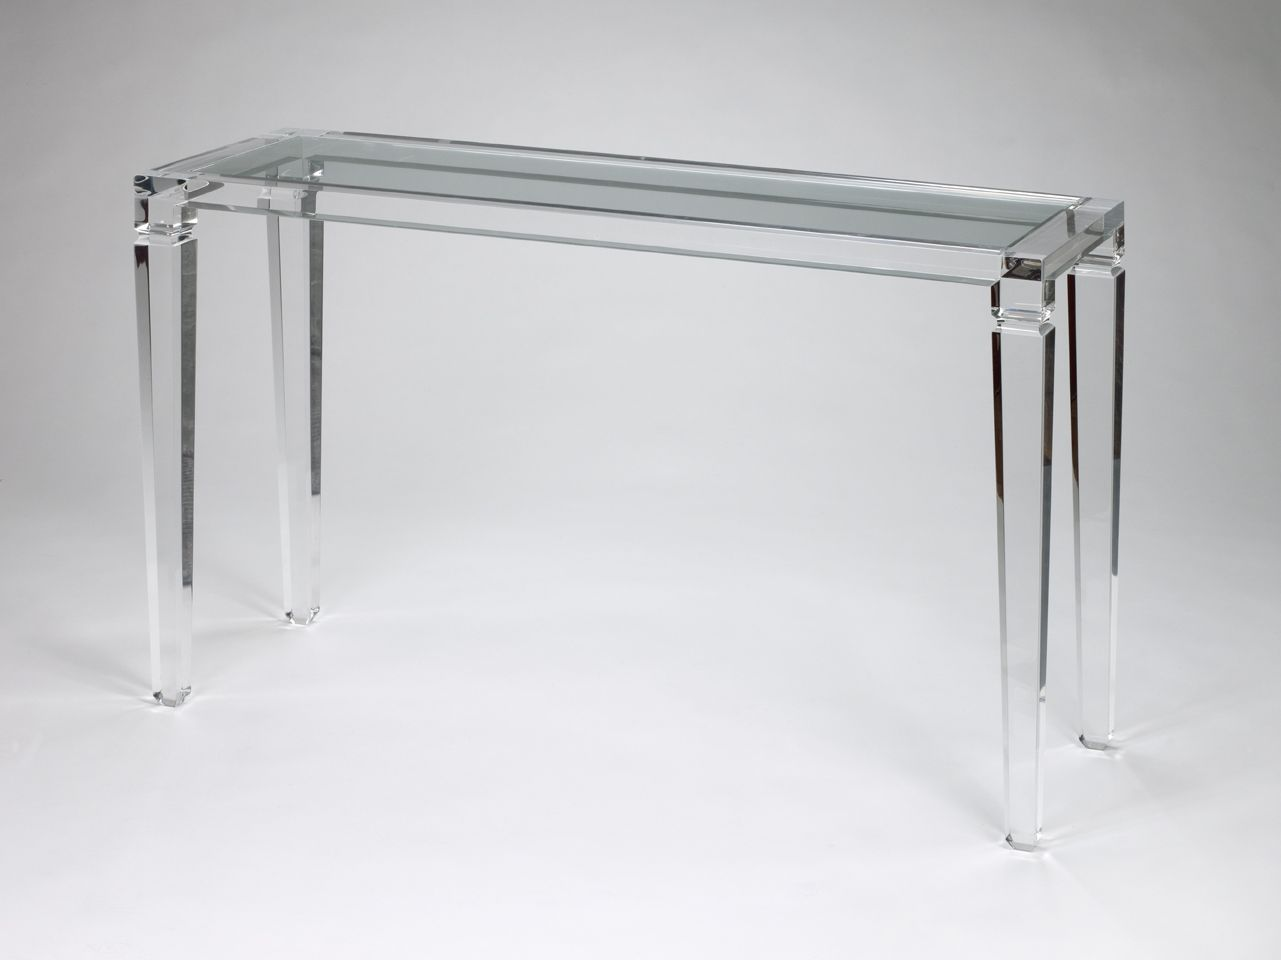 acrylic furniture legs. Best Lucite Console Table By Francesca Martire Acrylic Furniture Legs L